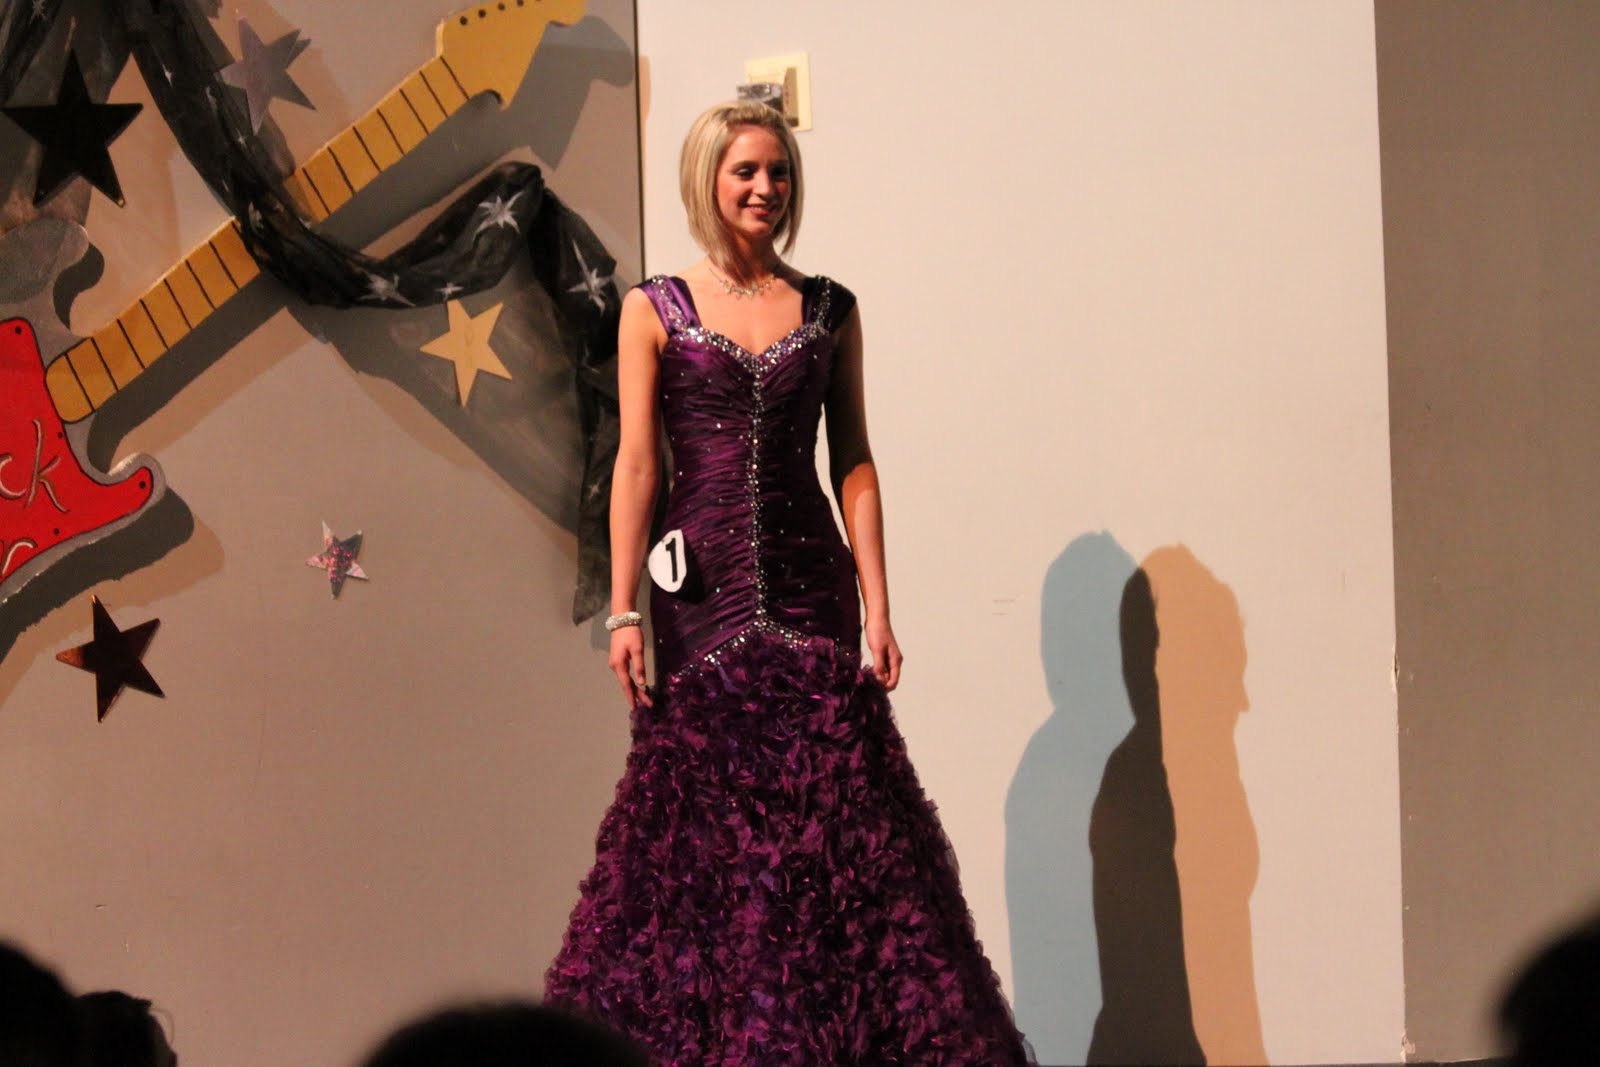 New Wearing Gowns For The Competitions First Dress Rehearsal, 21 High School Senior Girls From Across The County Stood Onstage Thursday Night In The Auditorium Of Bowling Green High School They Are Participants In The Distinguished